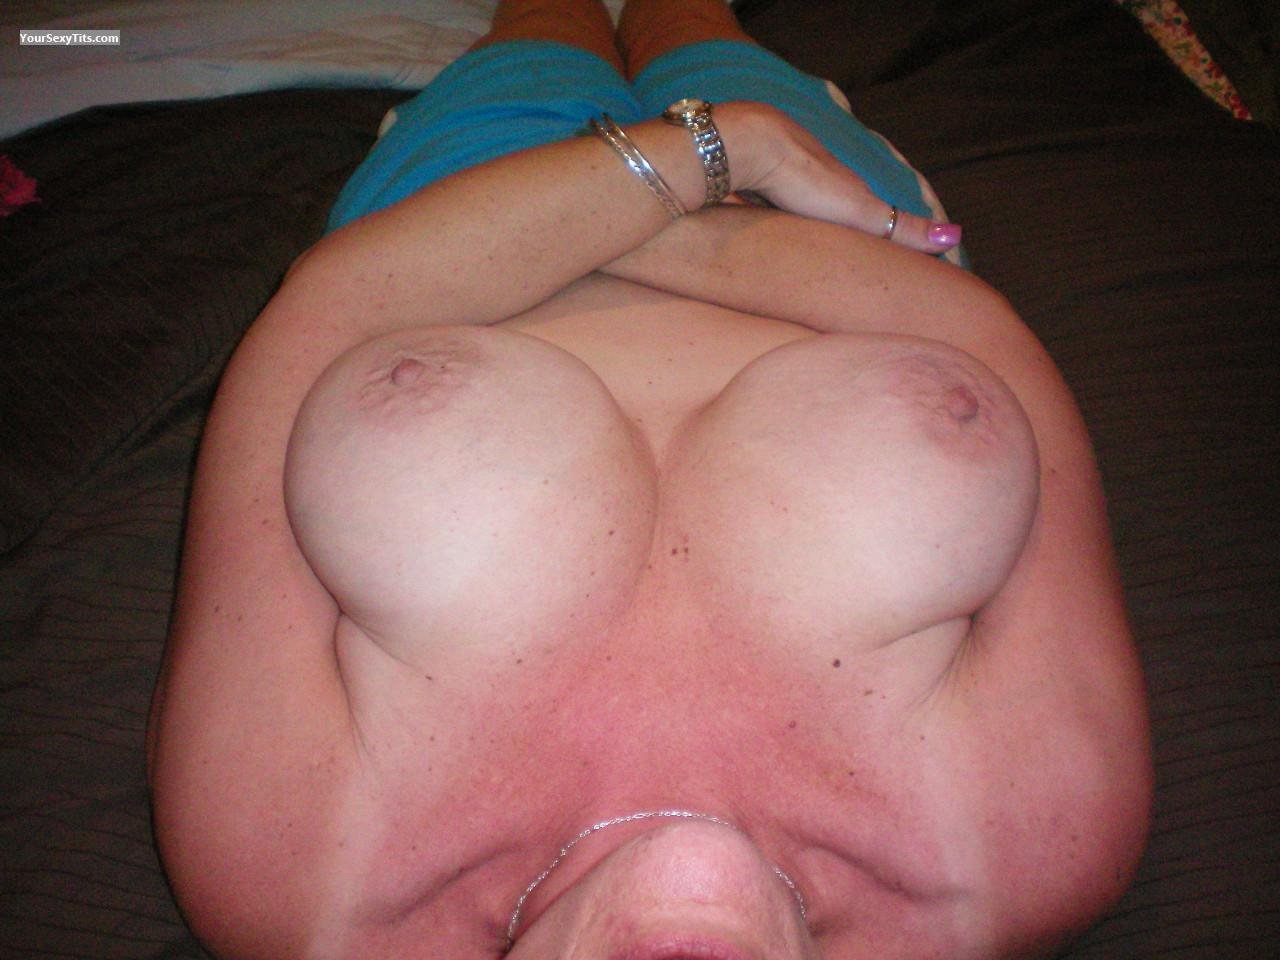 Tit Flash: Very Big Tits - Rachel Ann from United States